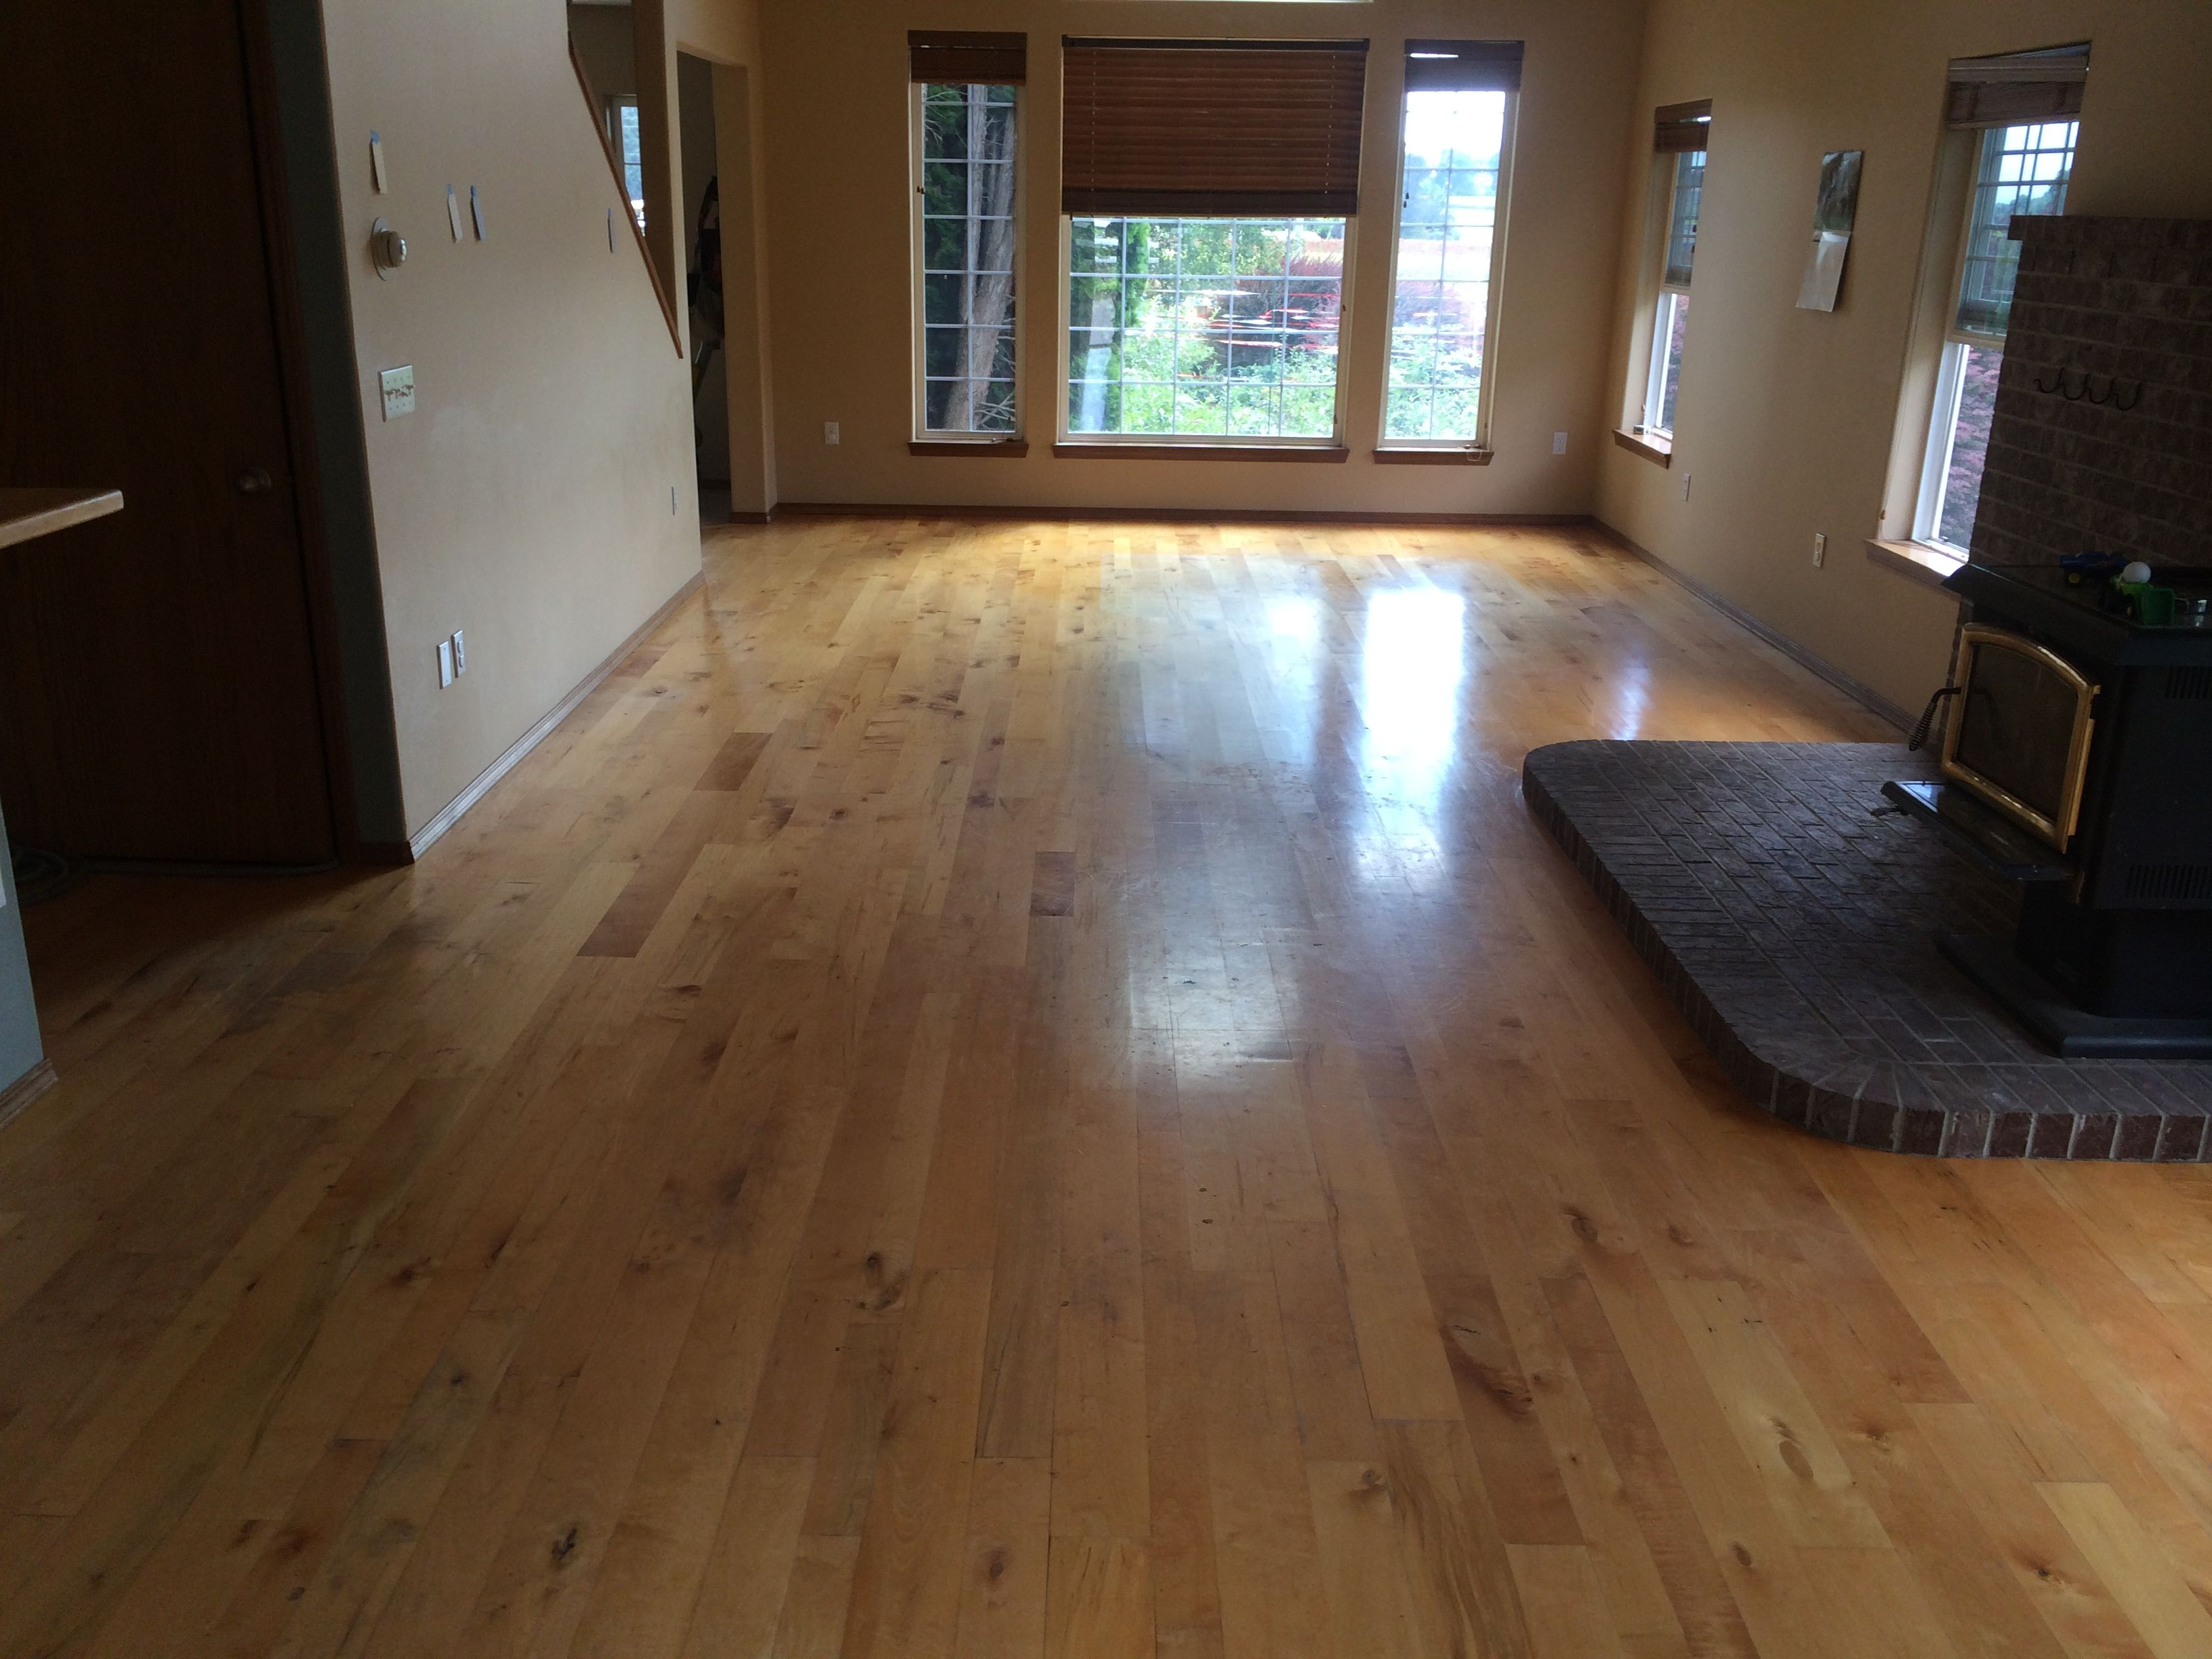 Refinish done in portland oregon floor is made from maple hardwood mix widths